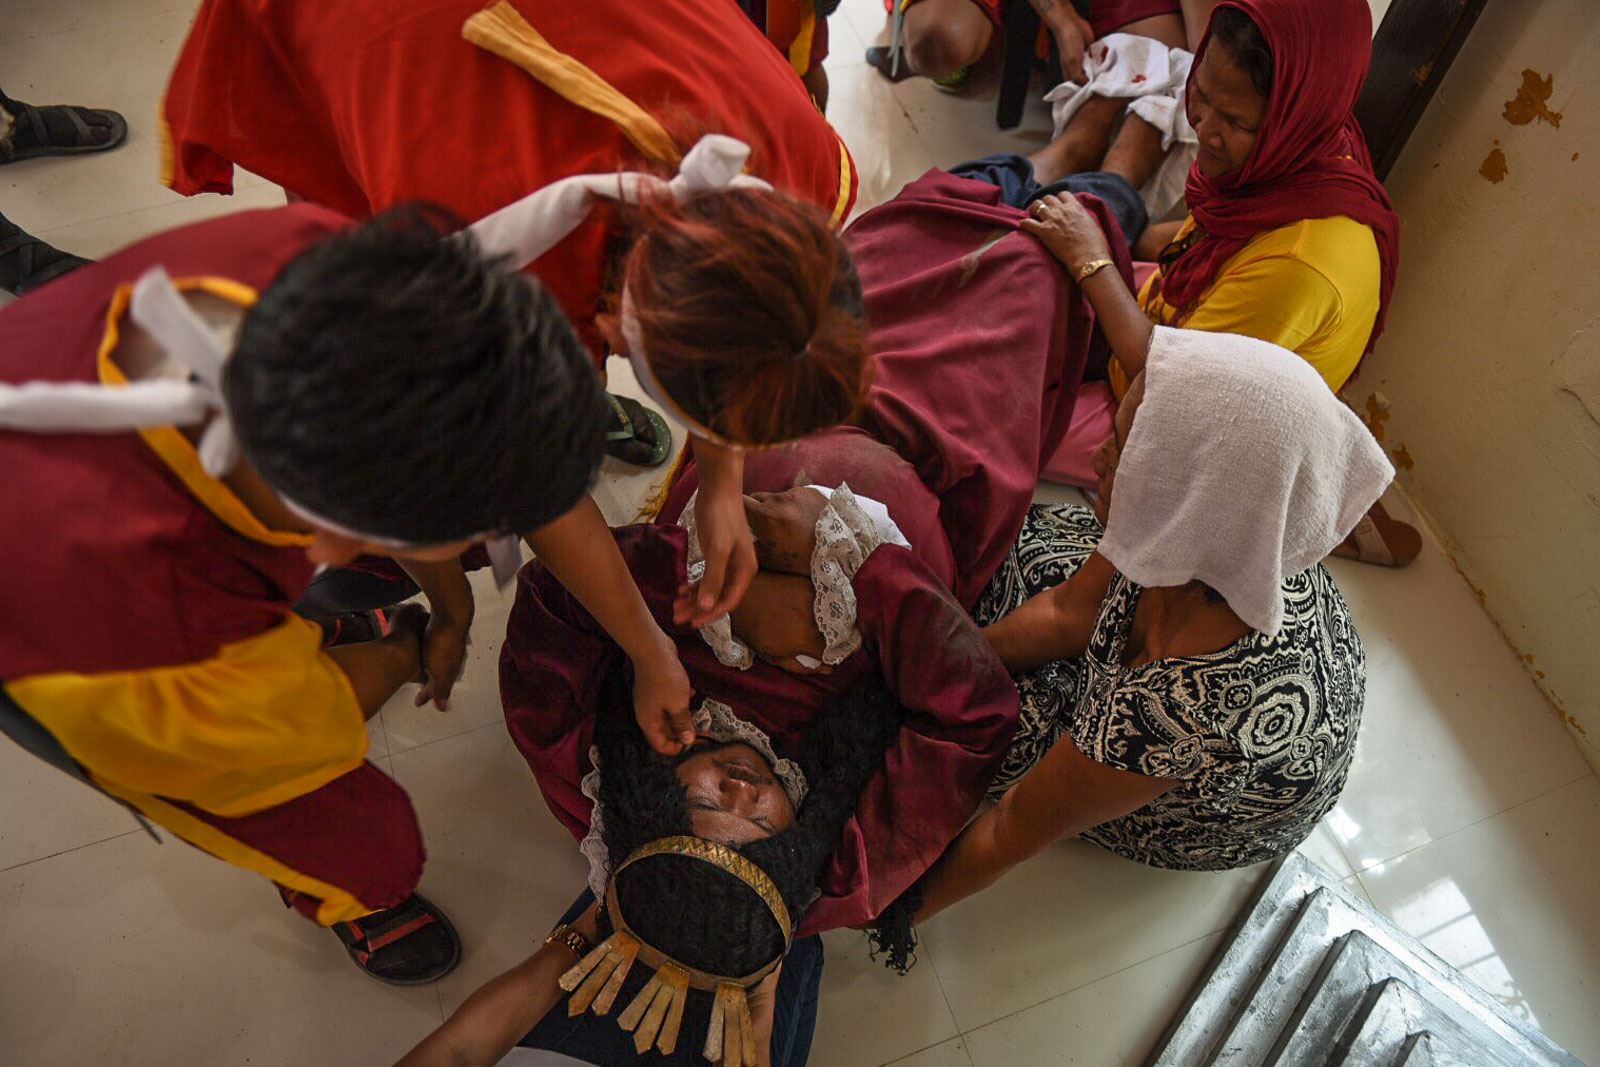 LA PIETA. Performers double as first aid volunteers cleaning the wound of Marcelino.